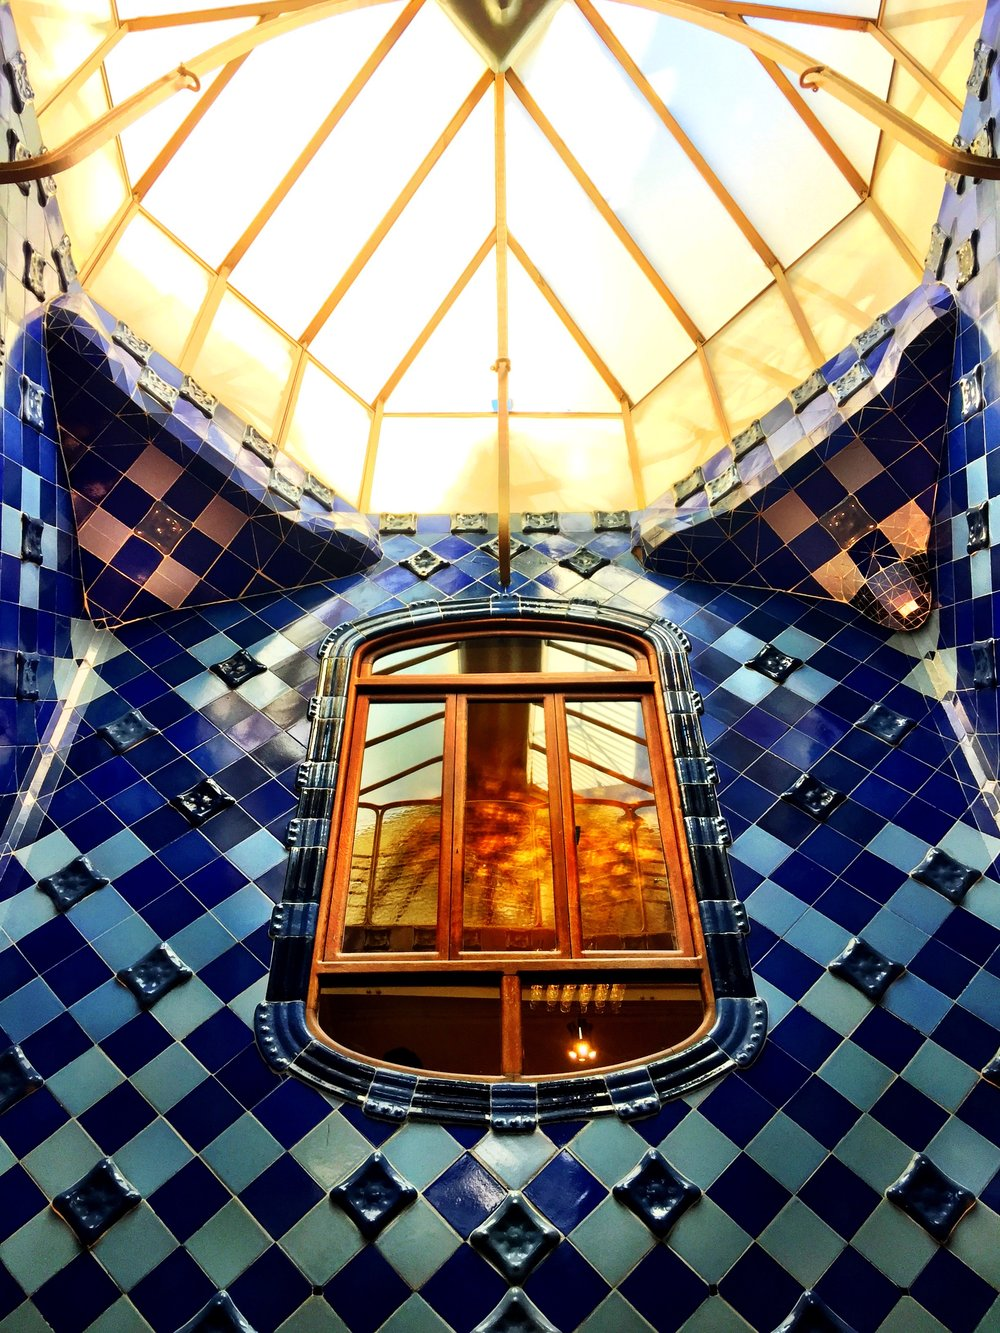 Lightwell at Casa Batllo - Barcelona